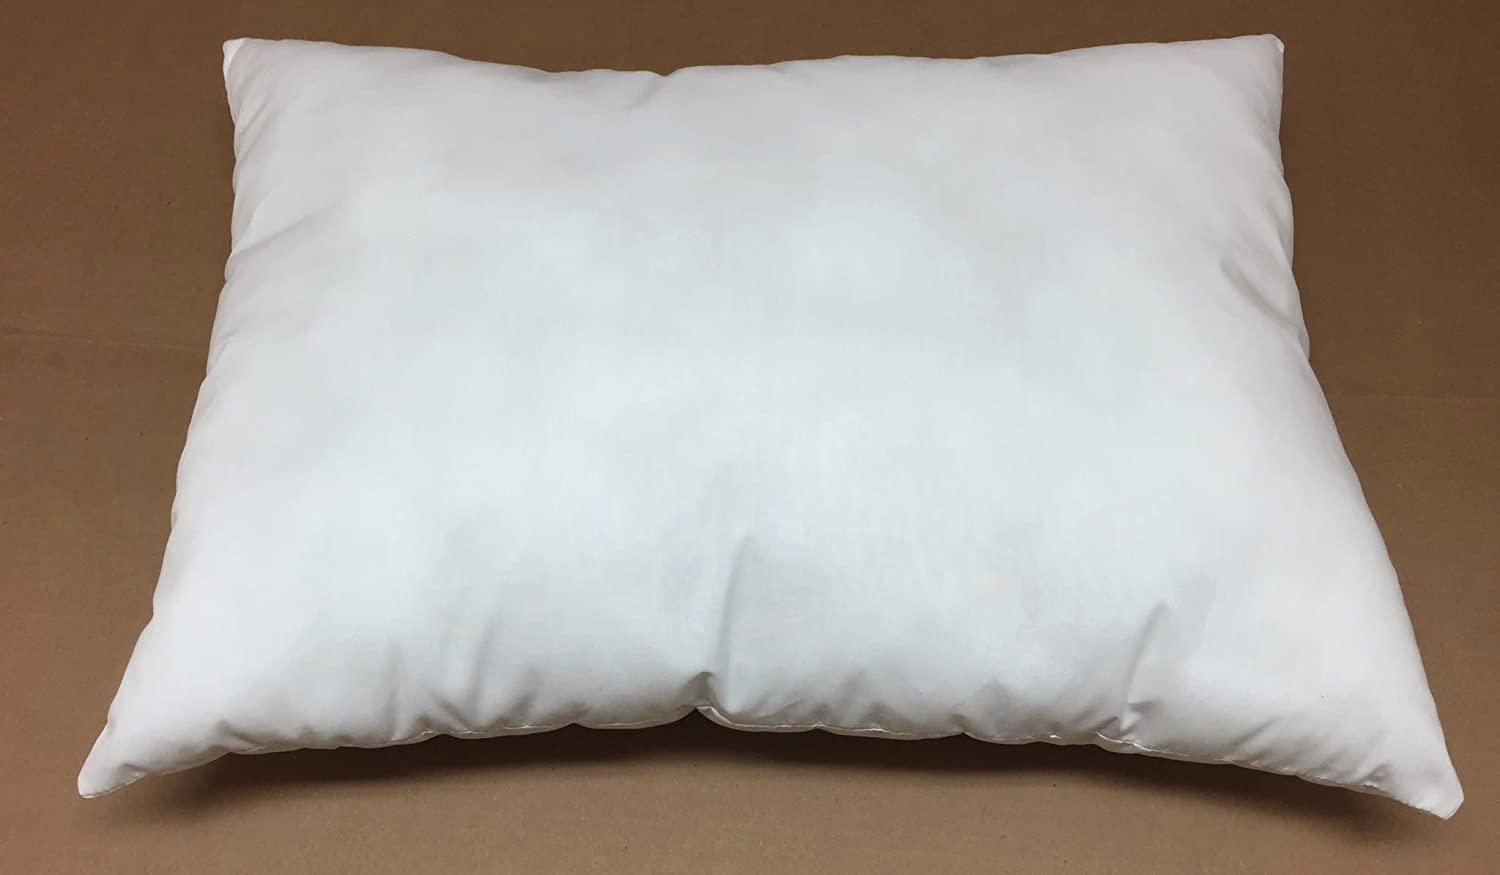 Down Throw Pillow Forms : 16x28 inch bolster cylindrical pillow insert form www.top-of-clinics.ru